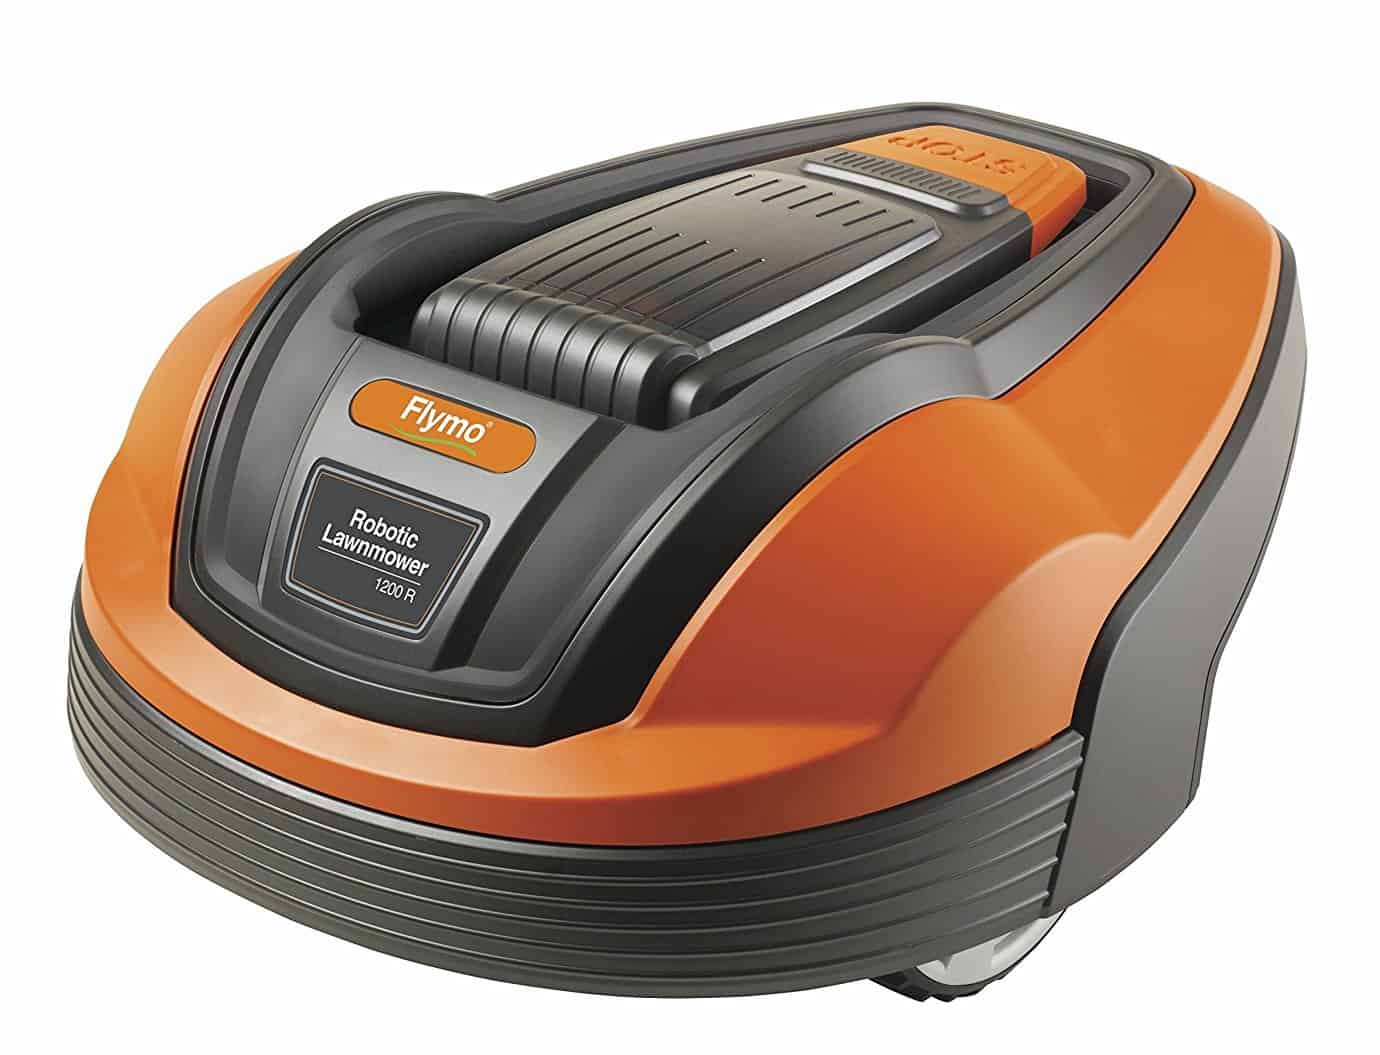 Flymo 1200R Lithium-Ion Robotic Lawn Mower, 18 V